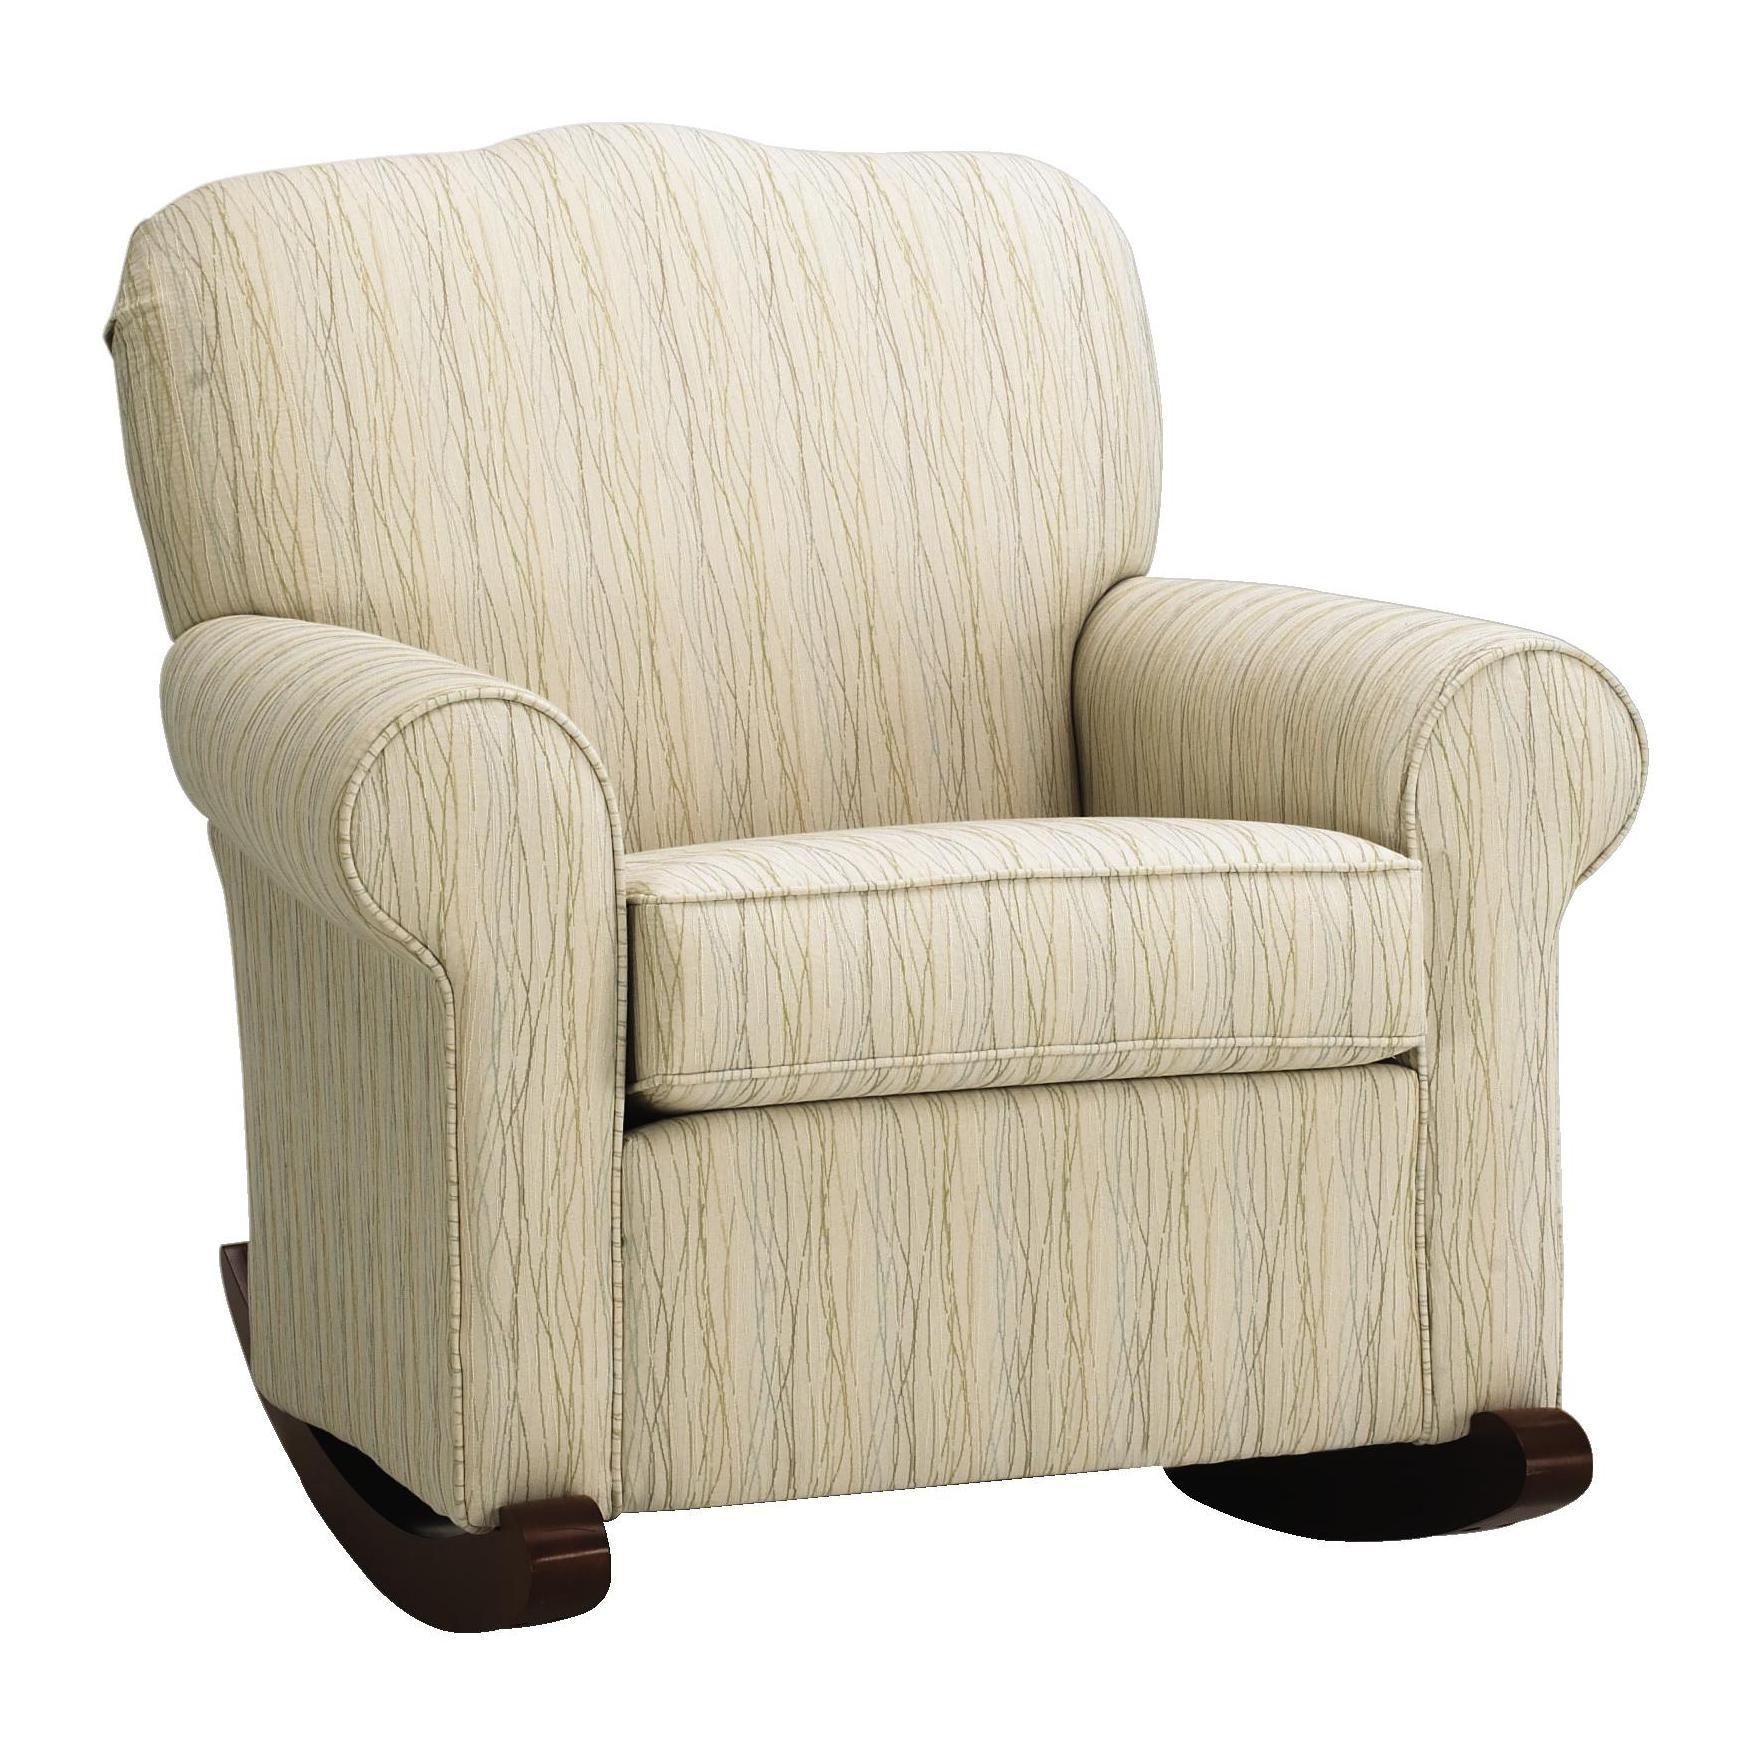 Popular Photo of Upholstered Rocking Chairs